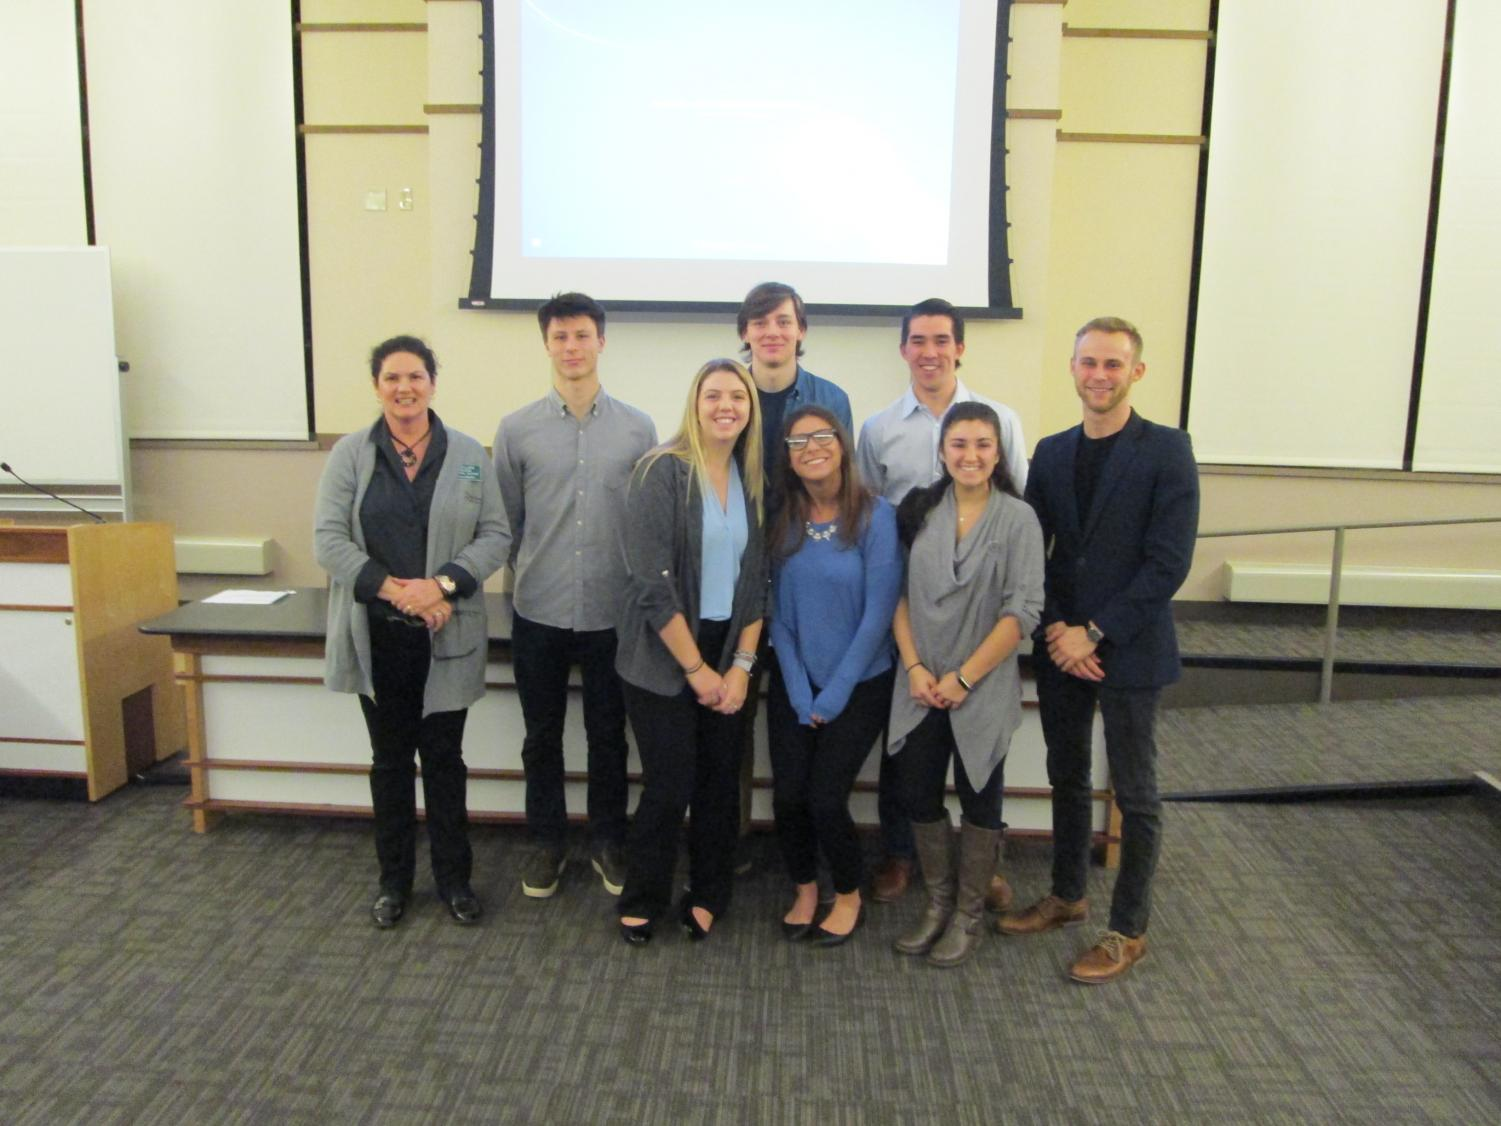 From left, financial adviser Joellen Nelson poses with Laker Asset Management club members Arseniy Sklyarov, Cleary Johnson, Garek Schultz, Gabrielle Procter, Jeremy Wu, Breanna Mysyk and Adrian Larsen.